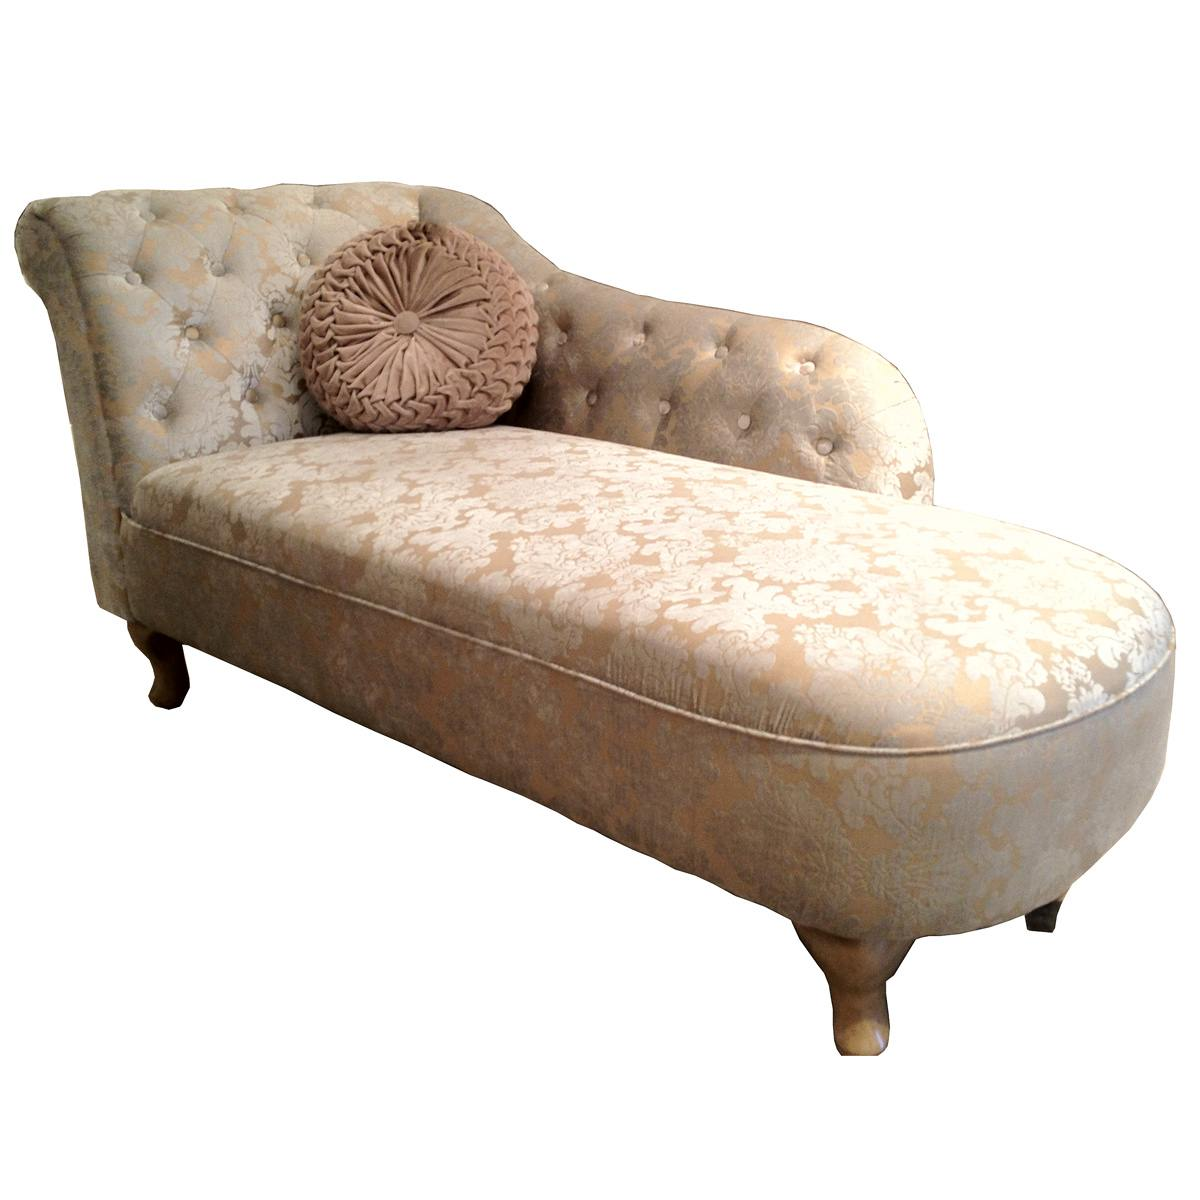 French chaises longues bedroom sofas french bedroom company for Chaise longue sofas